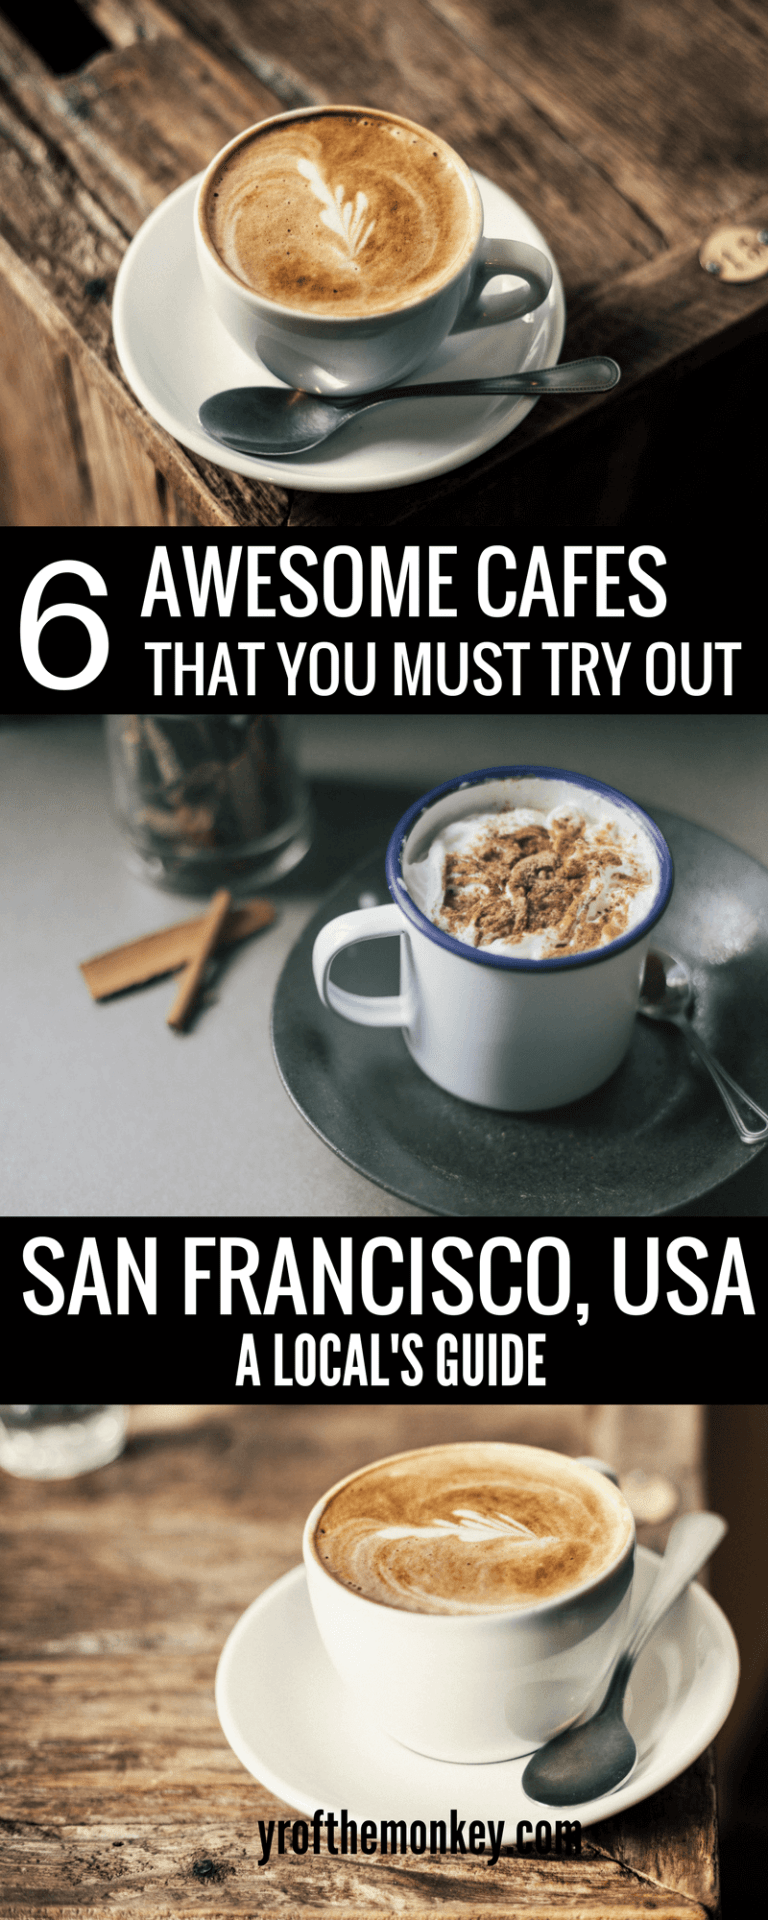 Top 6 Sf Cafes Best Coffee Places And Cute Cafes In San Francisco To Eat Foodie Travel Best Coffee Shop San Francisco Shopping